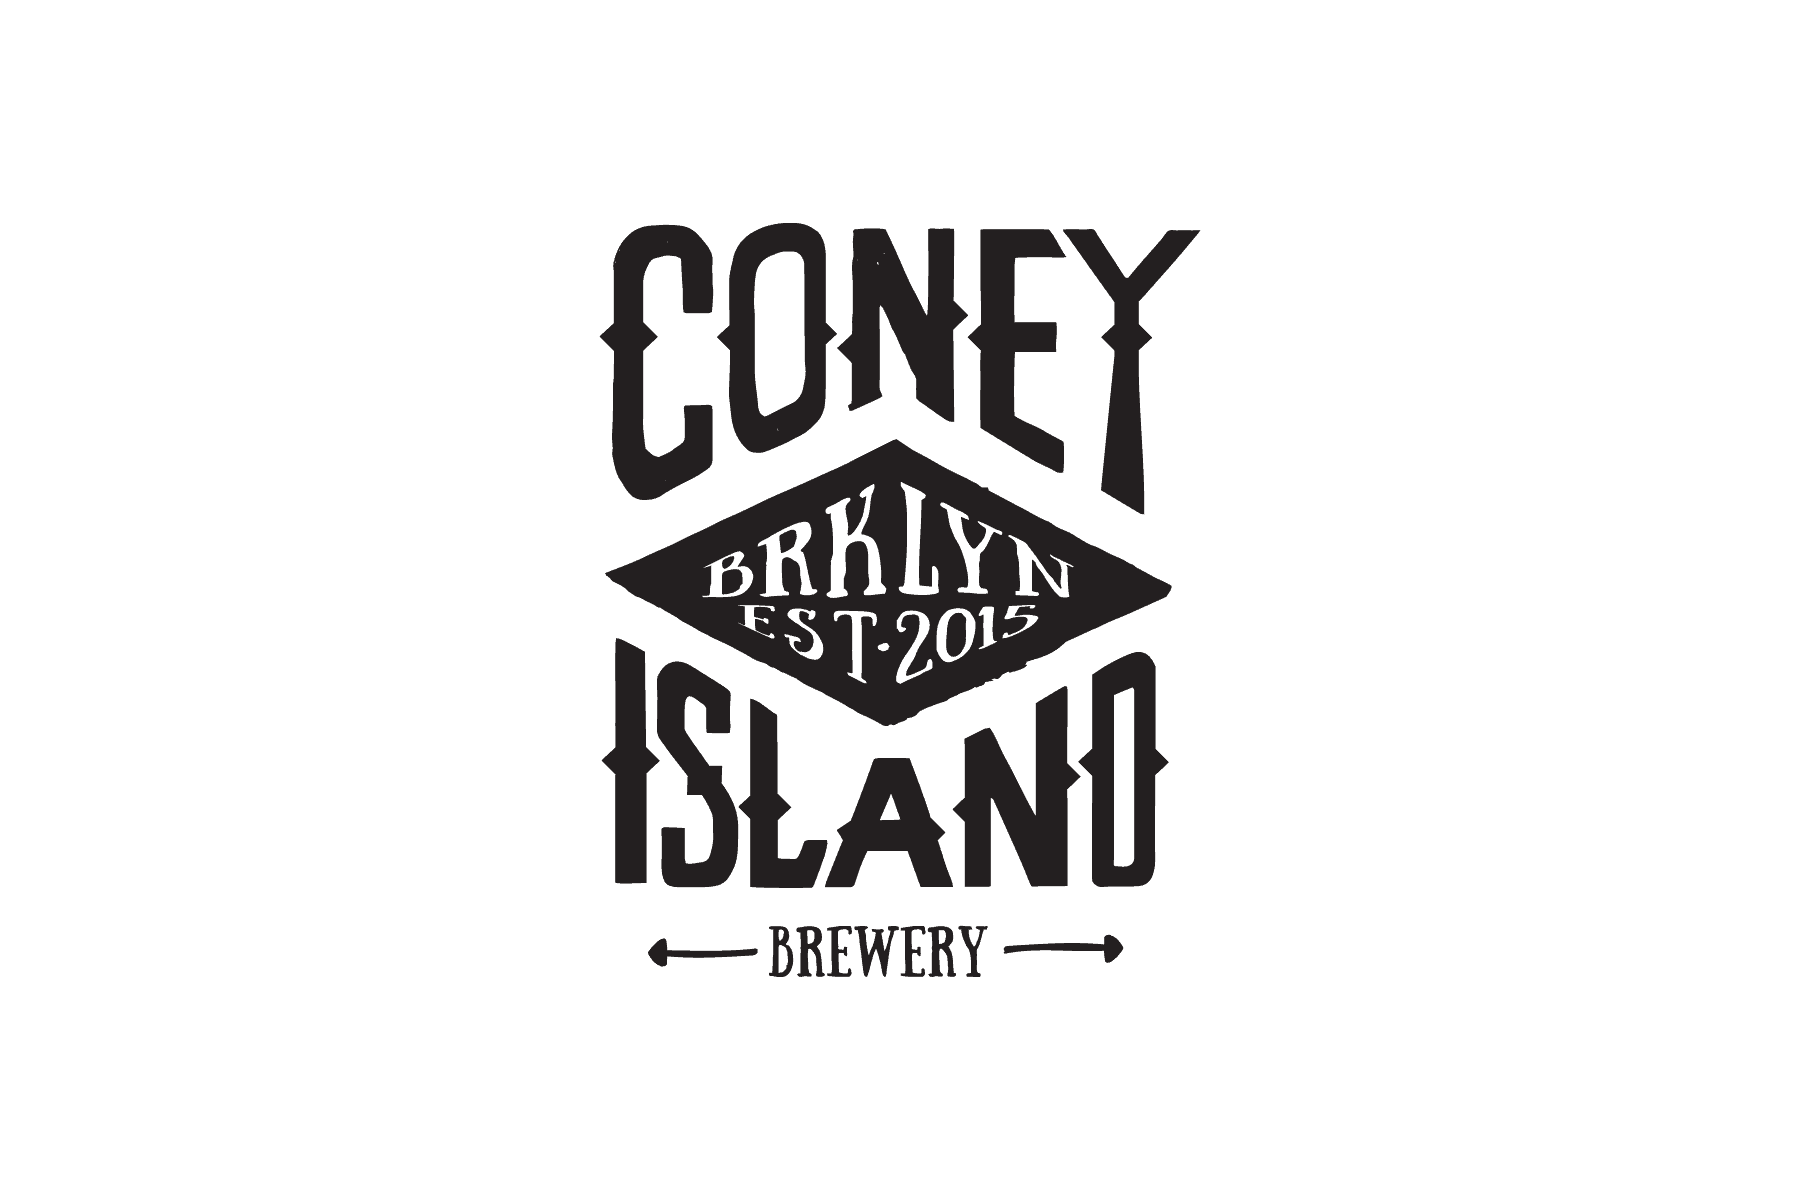 Hand rendered tee shirt design for Coney Island Brewery by Clutch Creative Co - Burlington, VT graphic design.